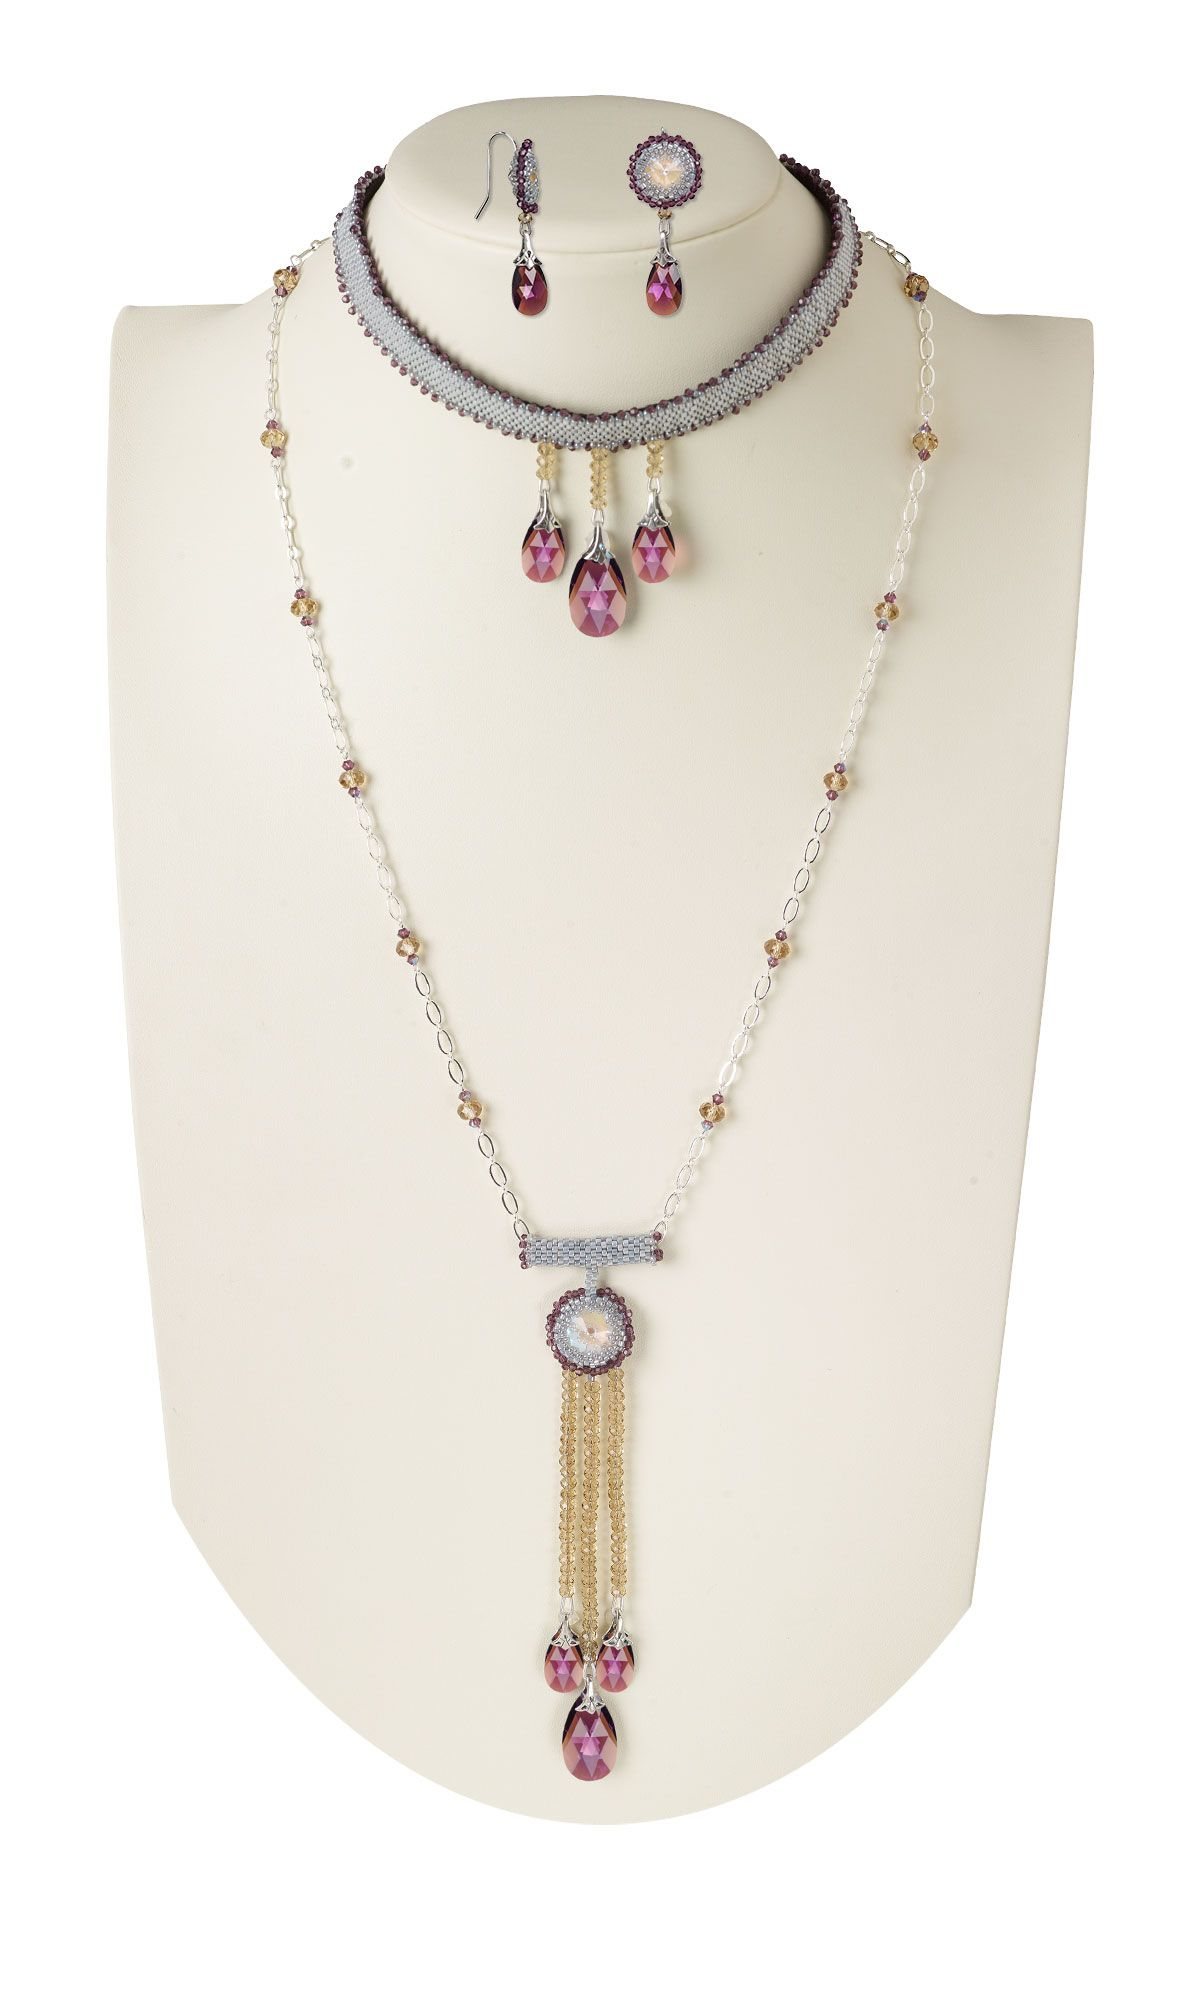 Jewelry design twopiece necklace and earring set with swarovski